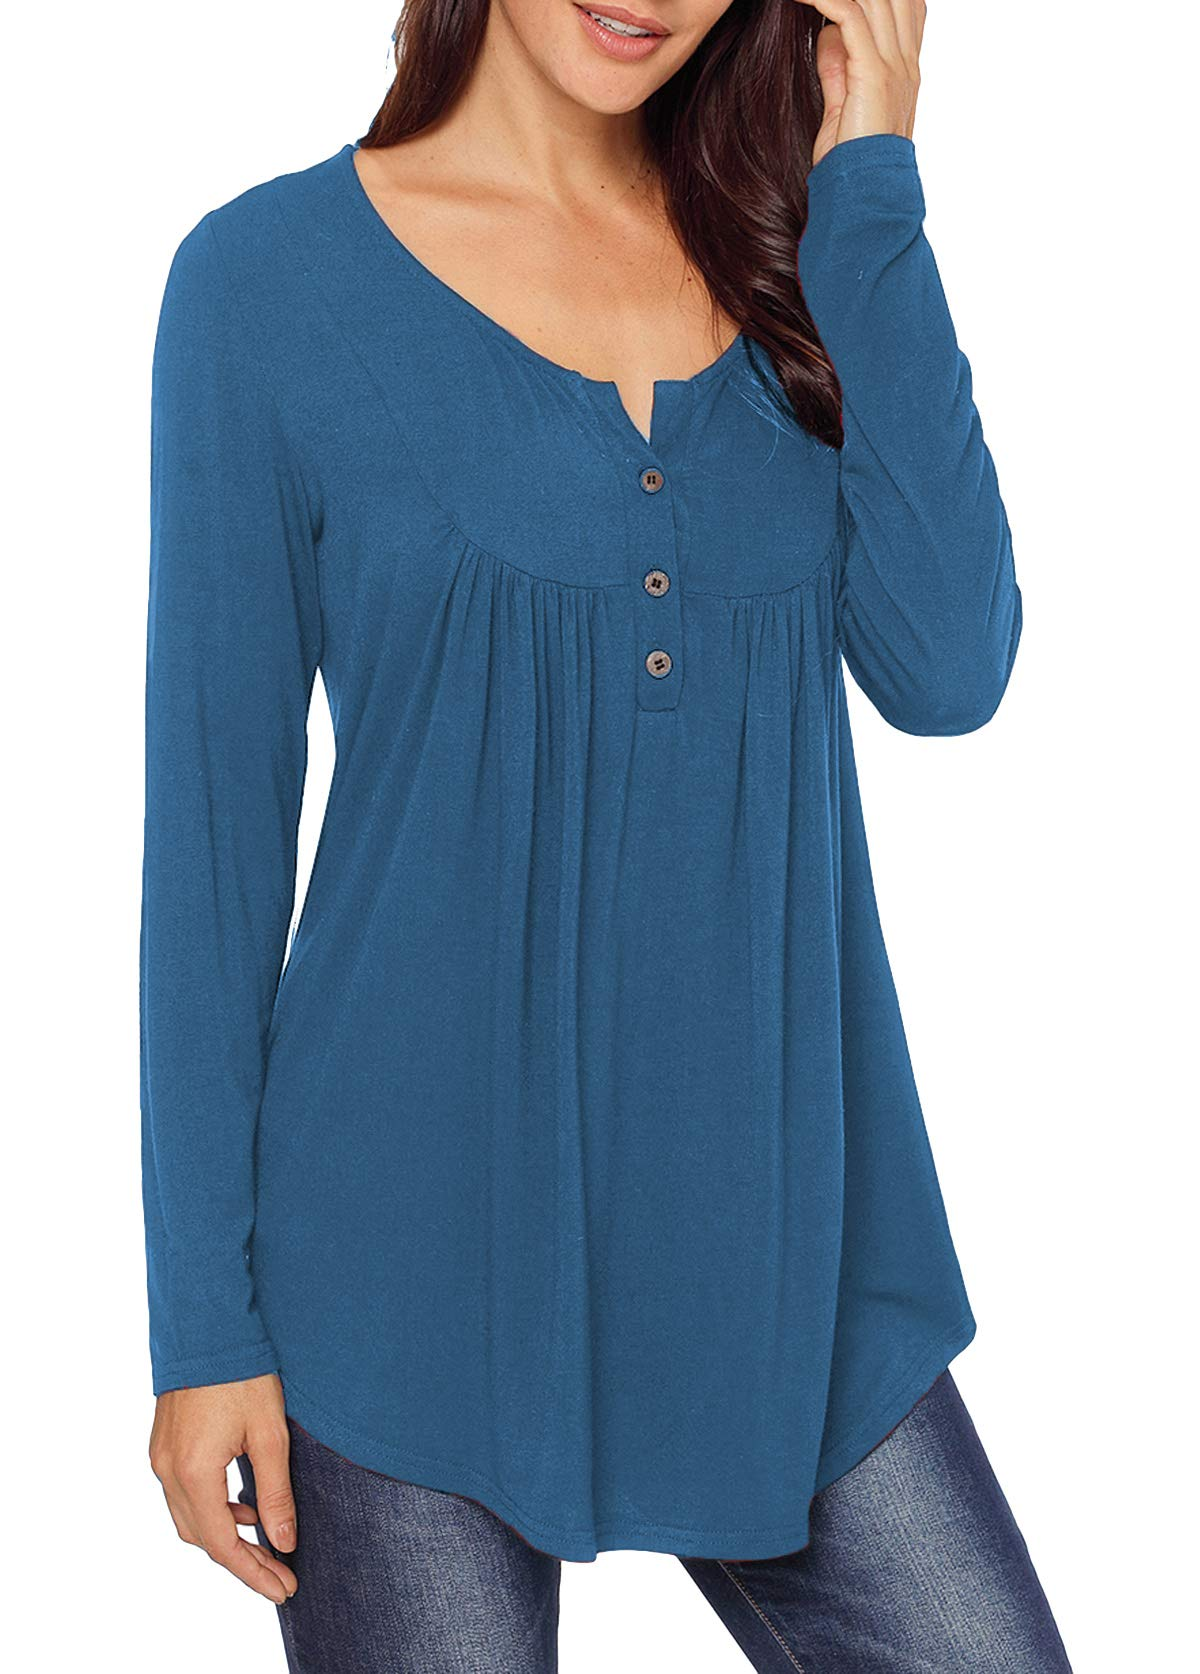 Mystry Zone Women's Blouse Fit and Flare Style Long Sleeve Loose Fitting Top Navy Blue XX-Large